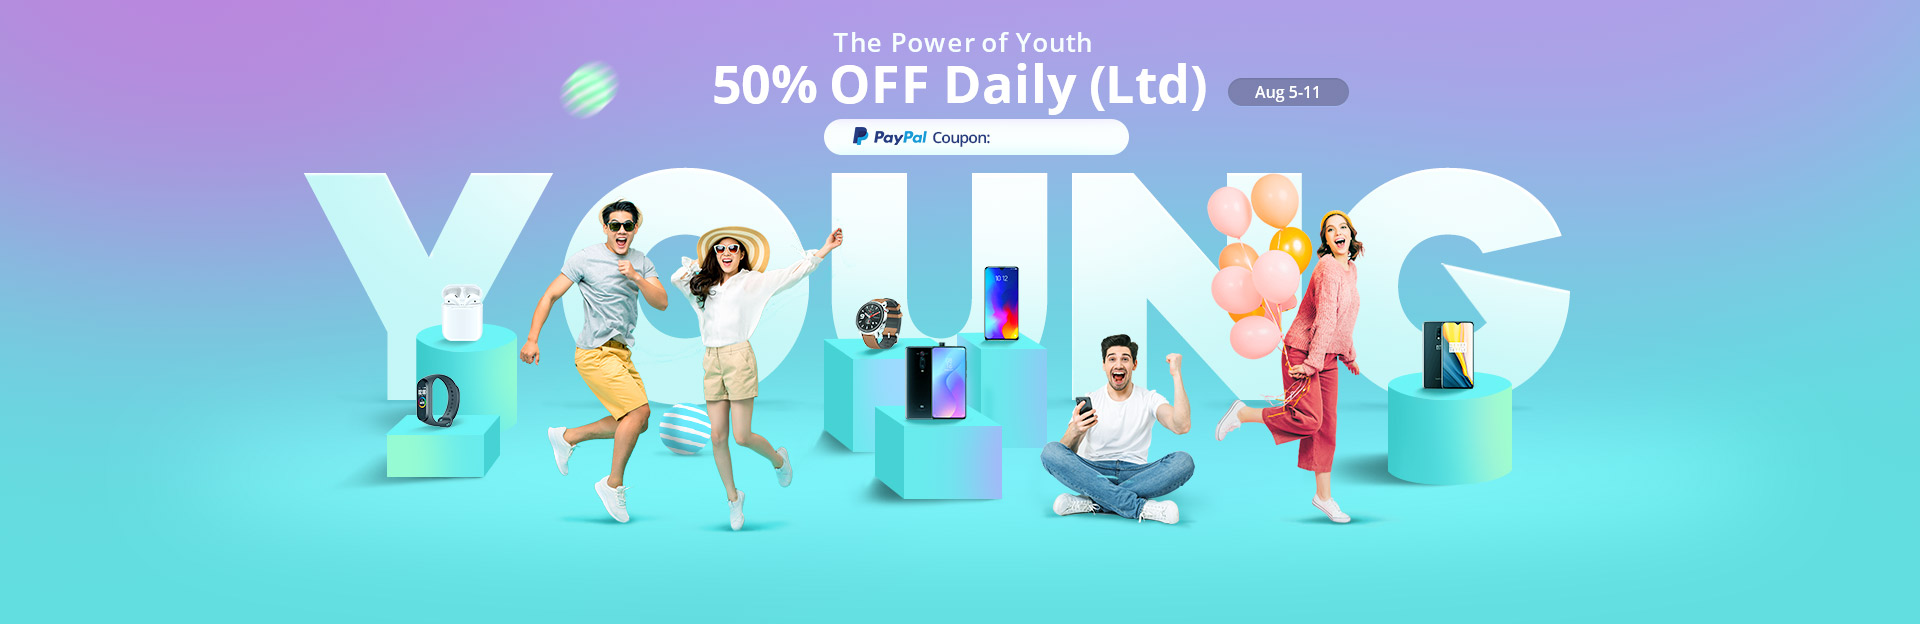 The Power of Youth Flash Sale 50% Off Daily